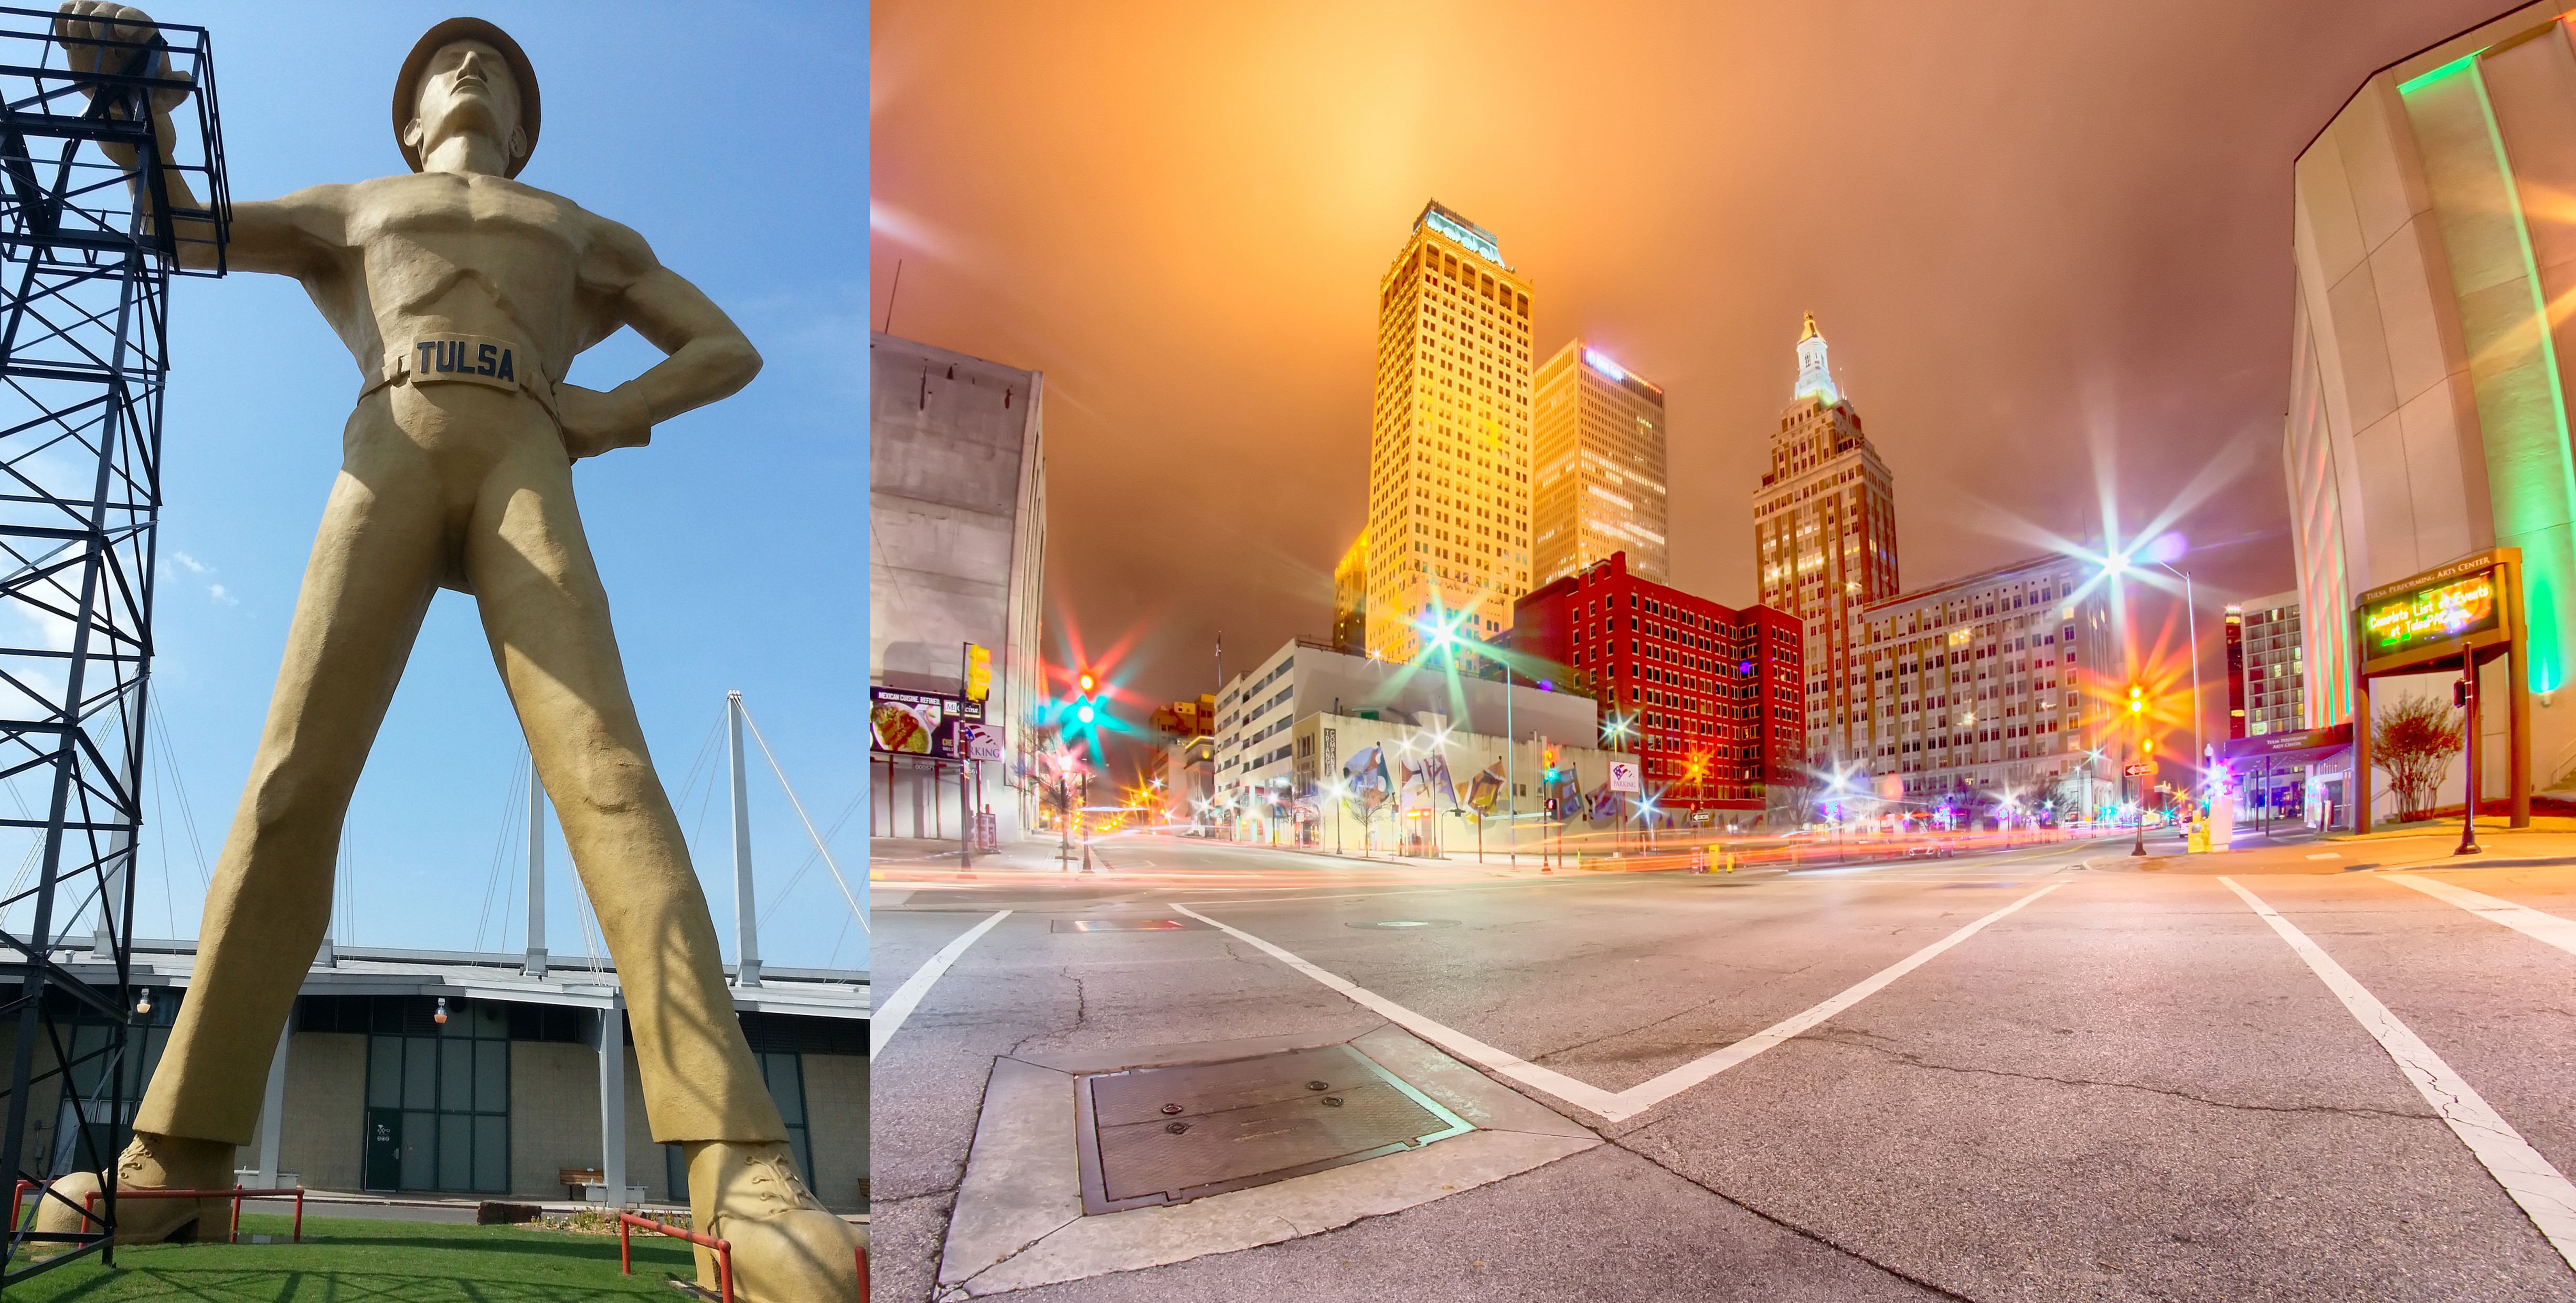 A giant statute of an oil driller next to a picture of downtown Tulsa.